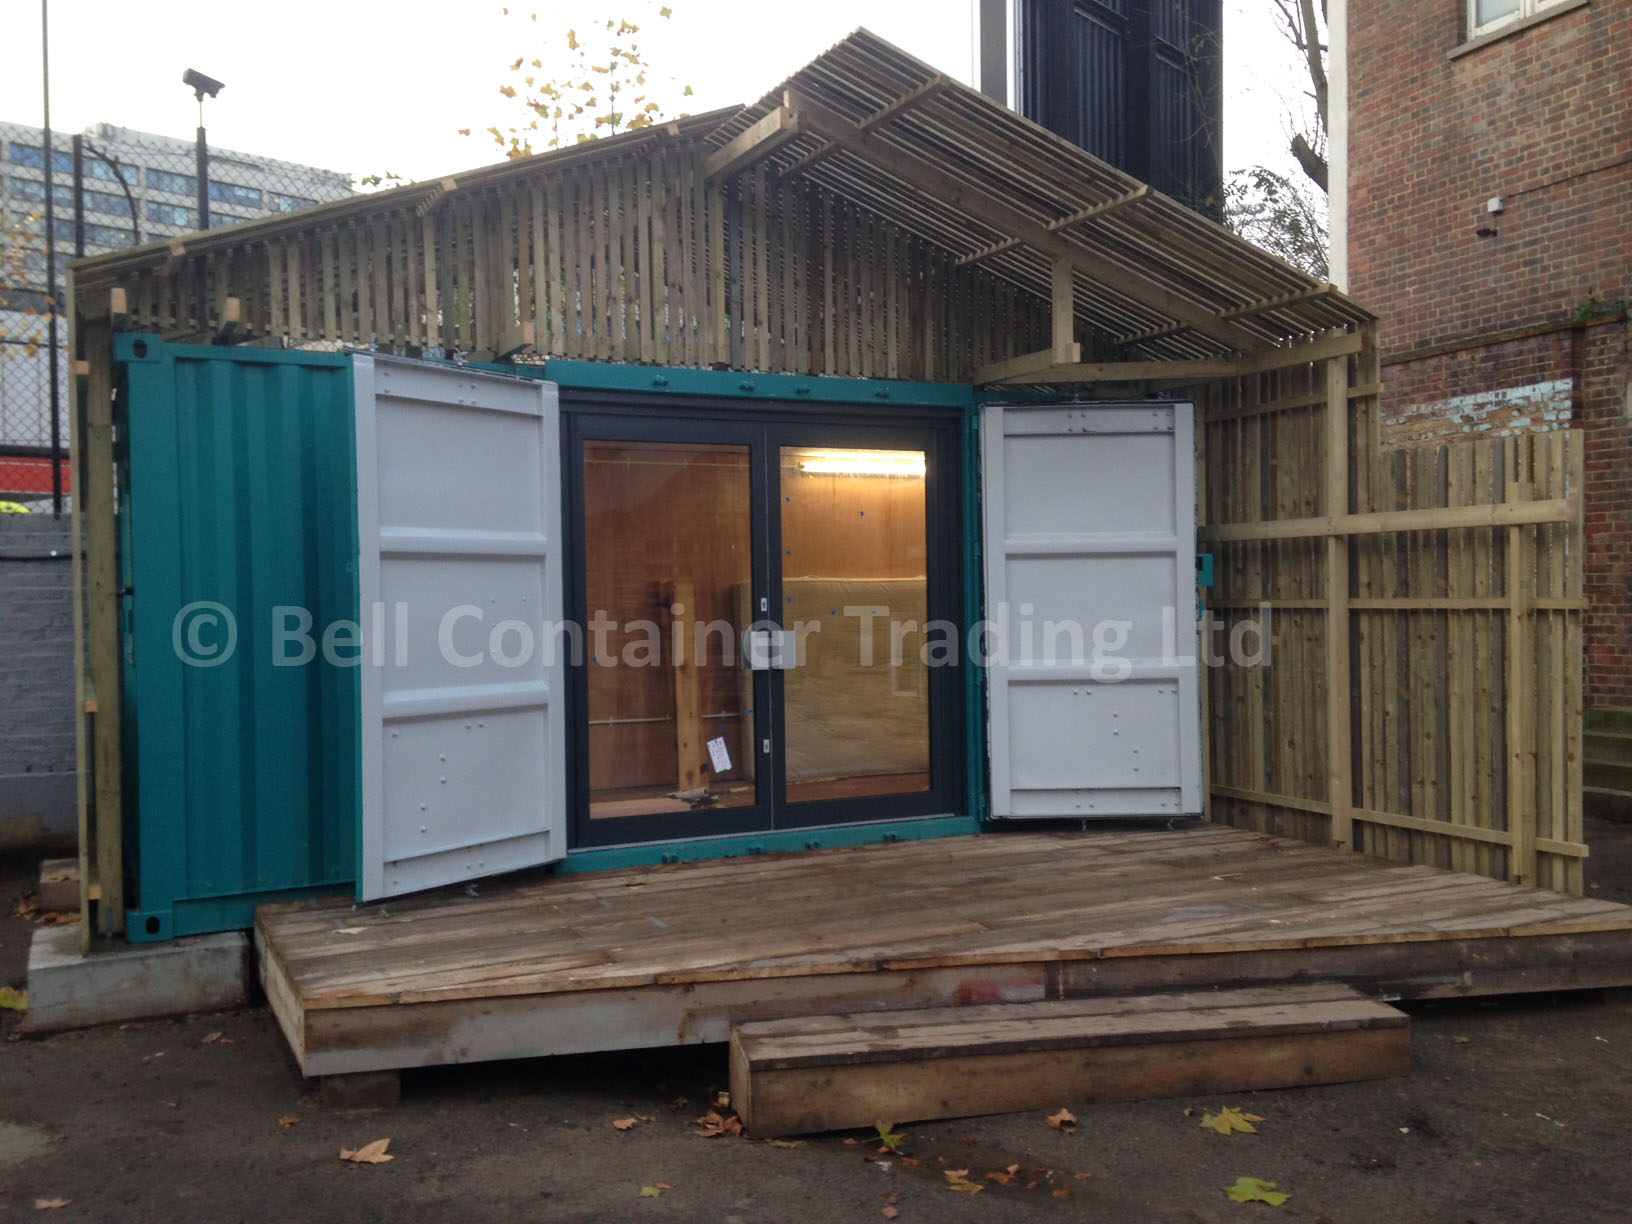 Shipping Container Studios And Popup Container Shops Pop